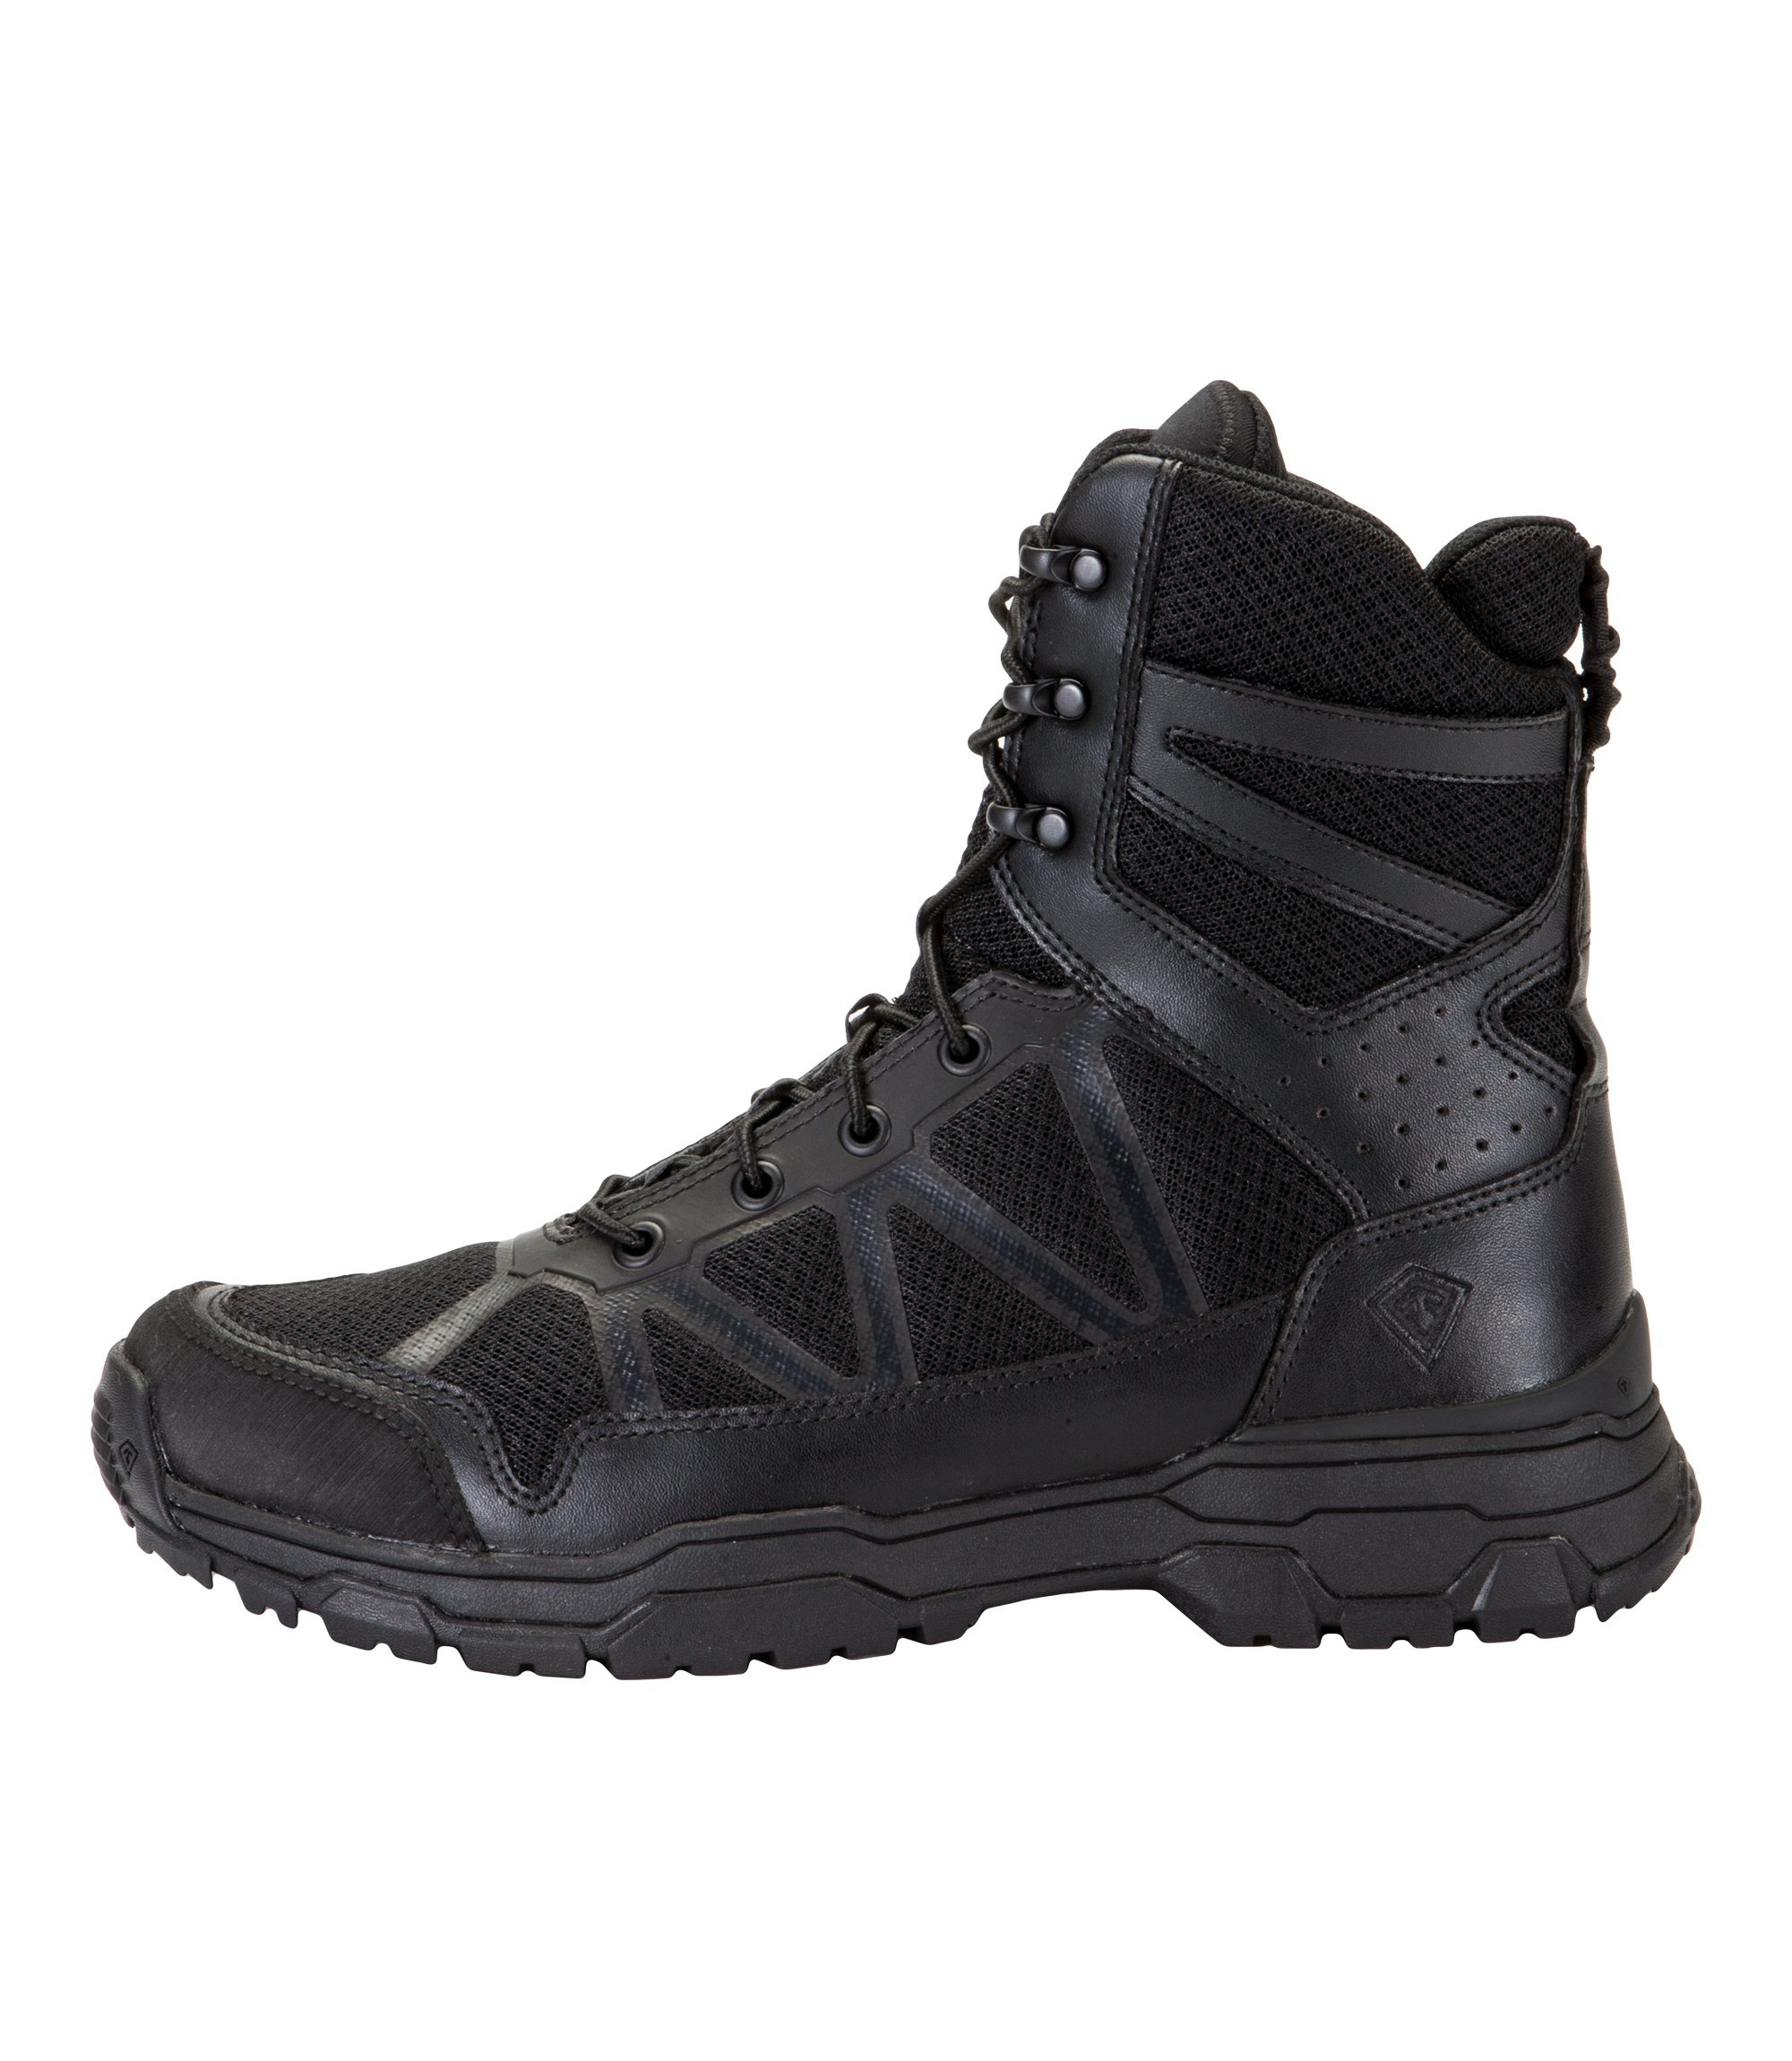 """Image of Buty first tactical m's 7"""" operator boot black 165010 - kolor black (019), rozmiar (a) 42 (u1t/165010 019 8 - 42)"""